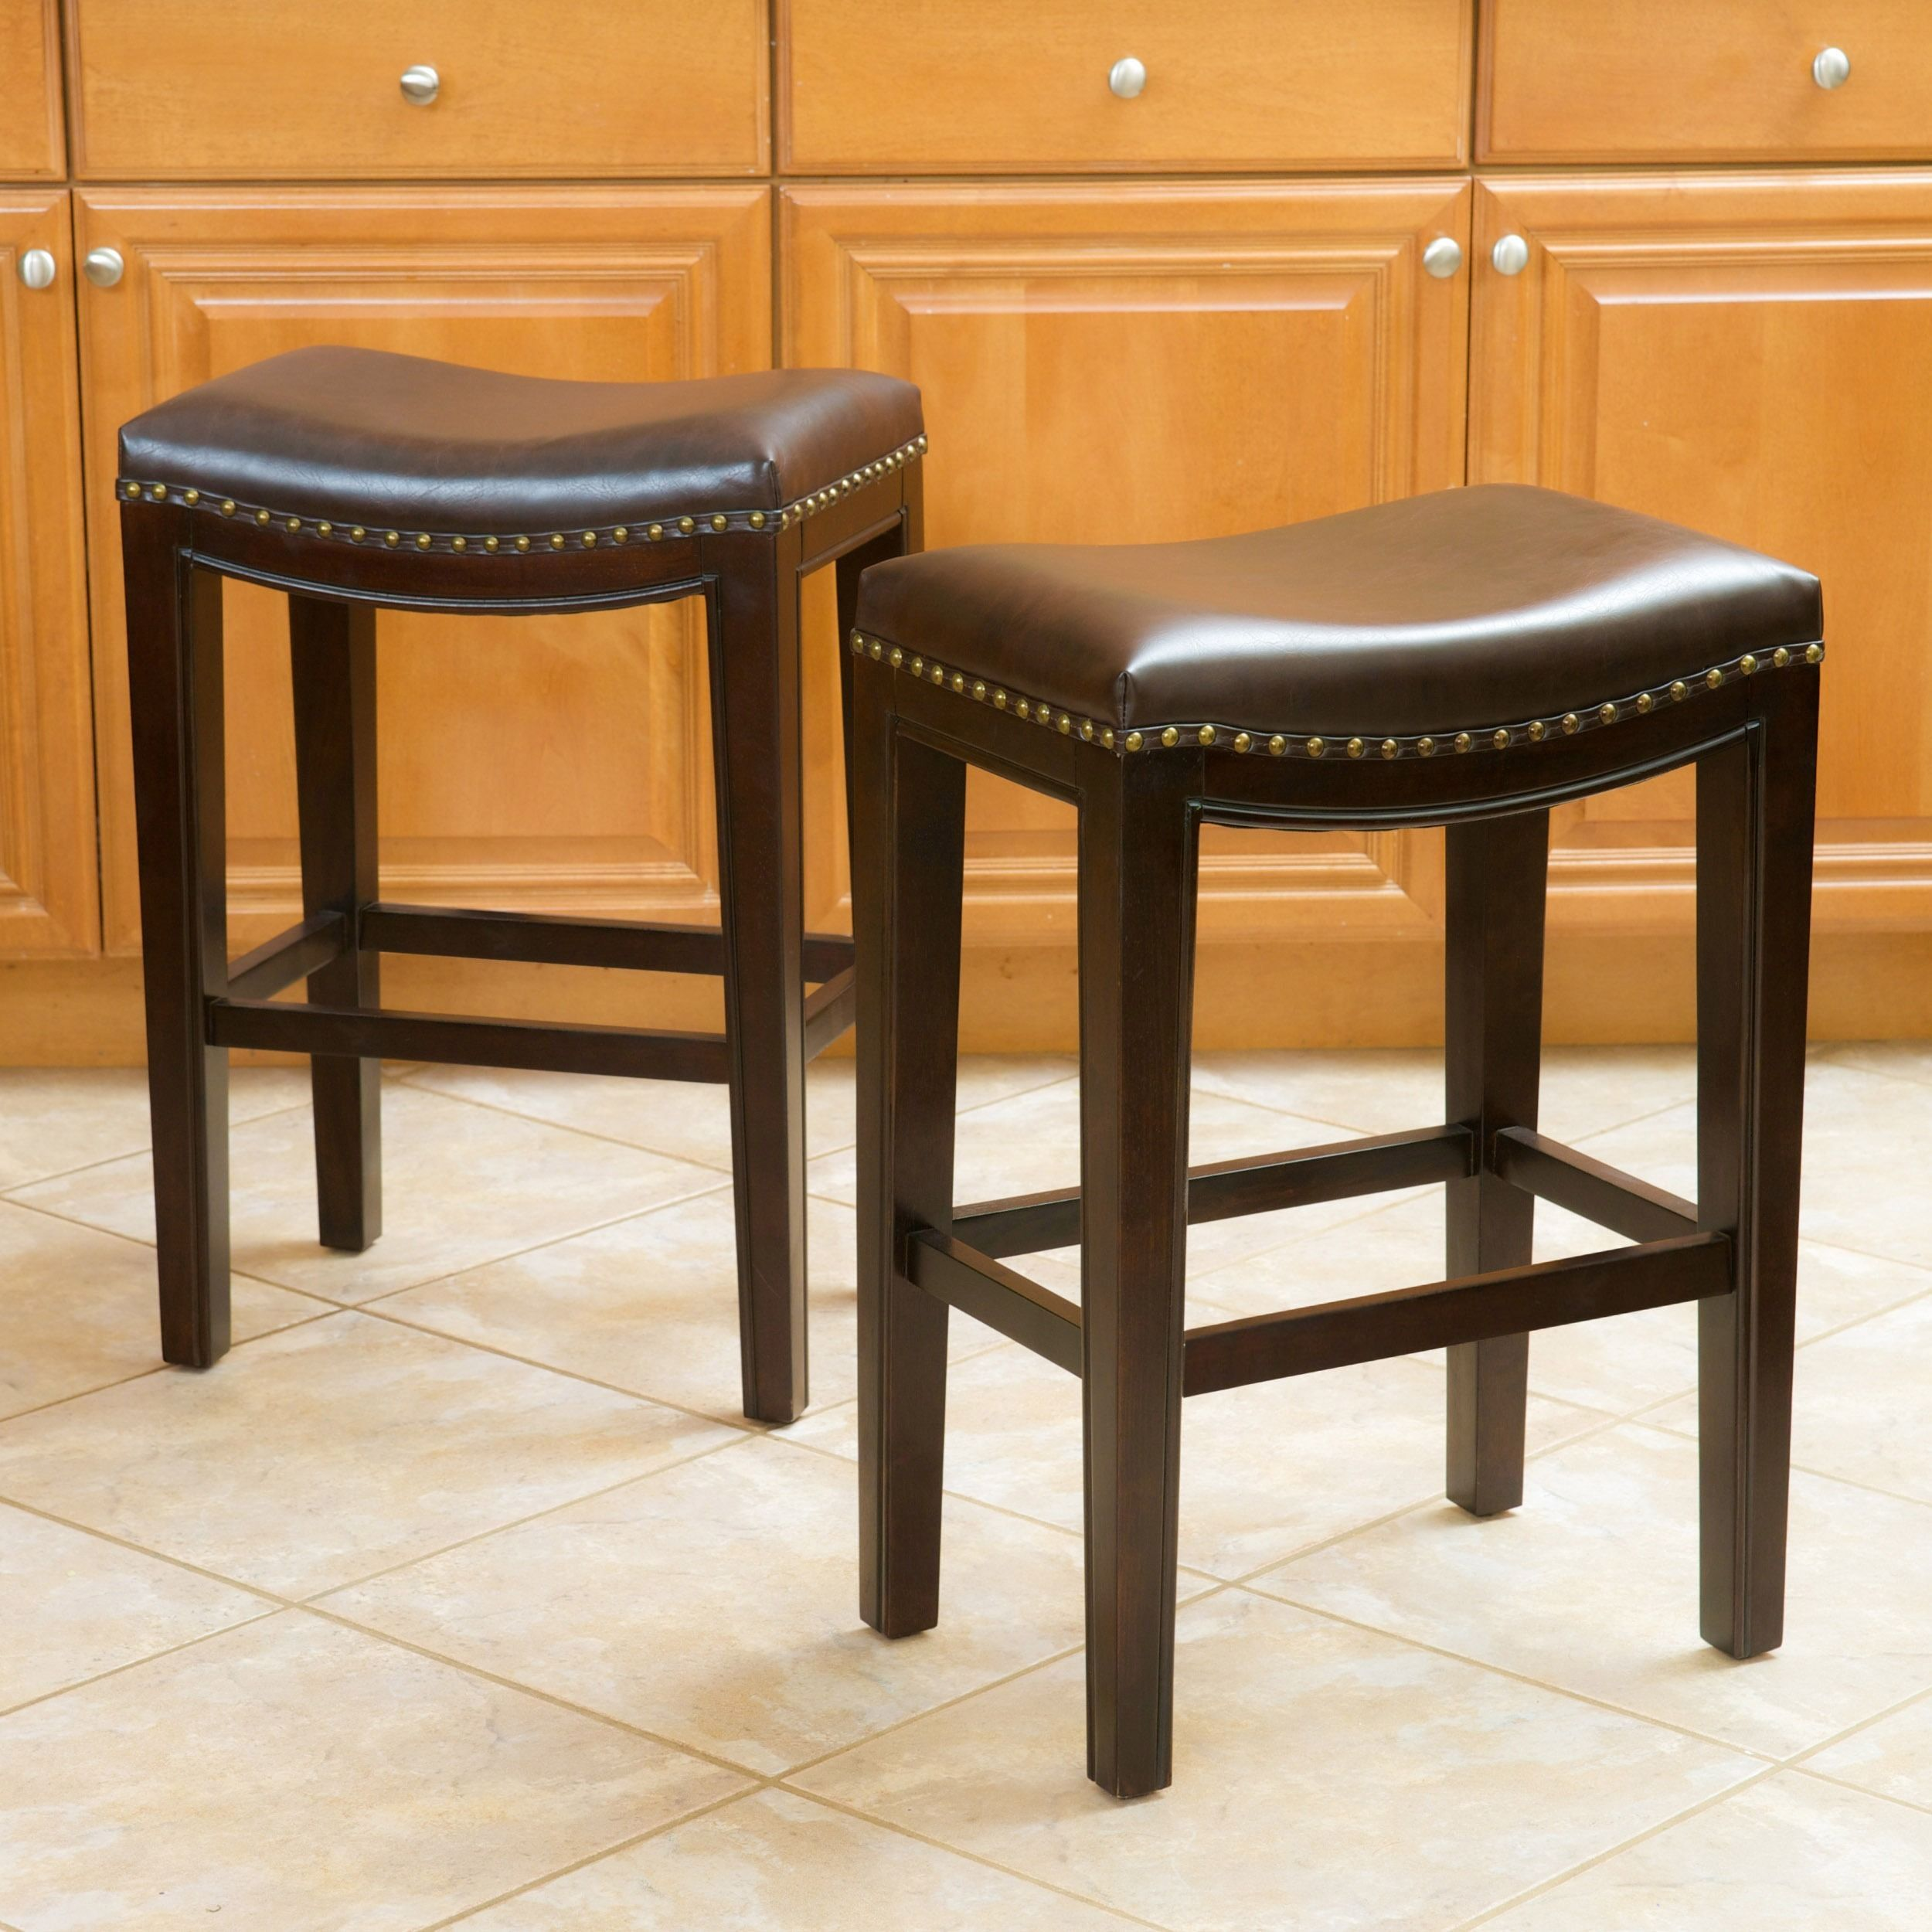 Avondale 26 Inch Brown Bonded Leather Backless Counter Stool Set Of 2 By Christopher Knight Home Leather Counter Stools Counter Stools Backless Bar Stools